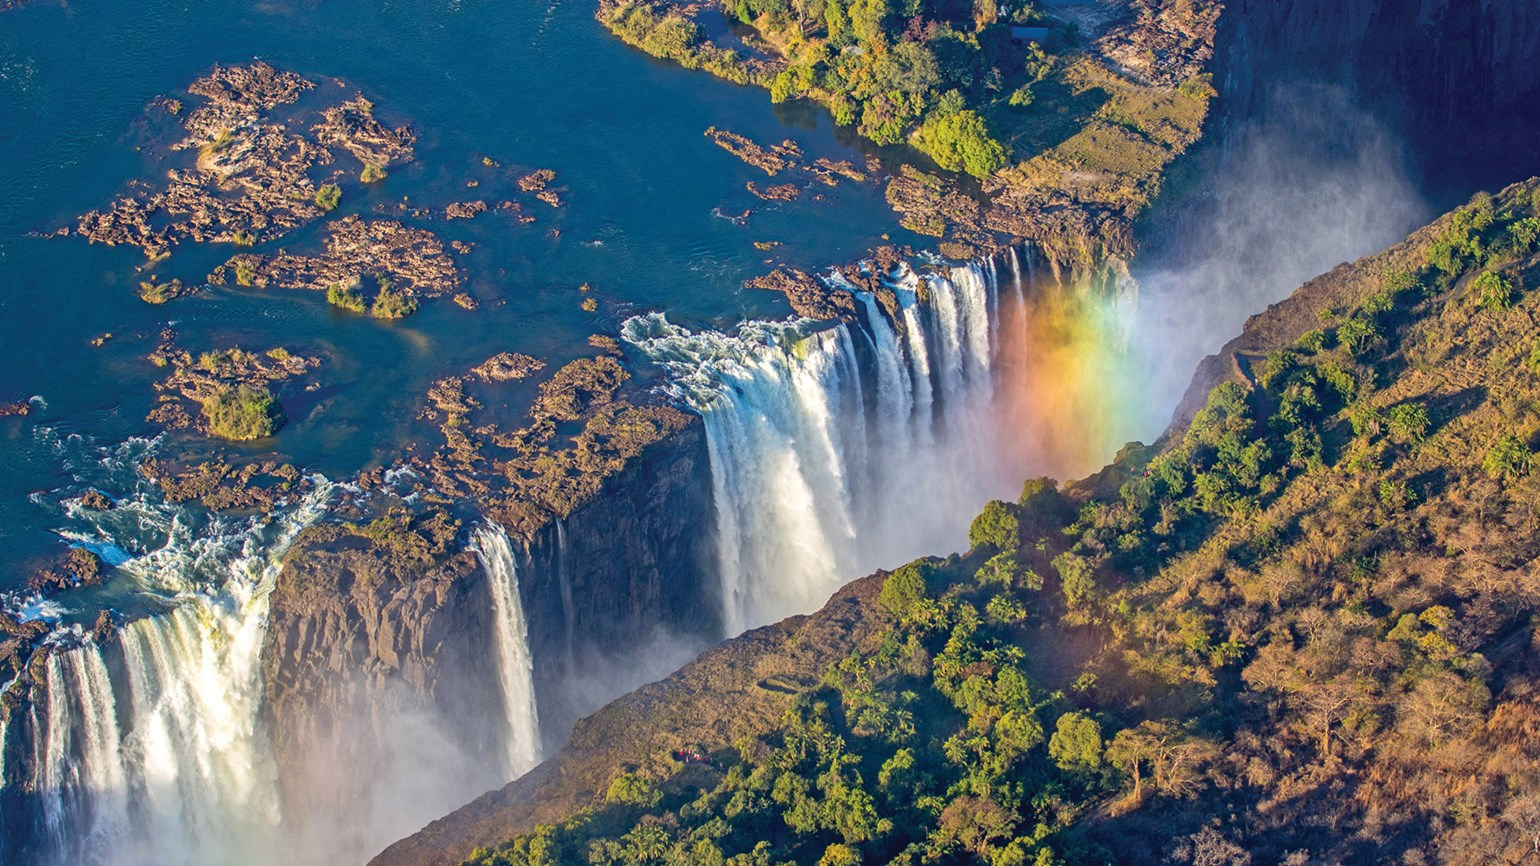 Operators dismiss reports that Victoria Falls is drying up